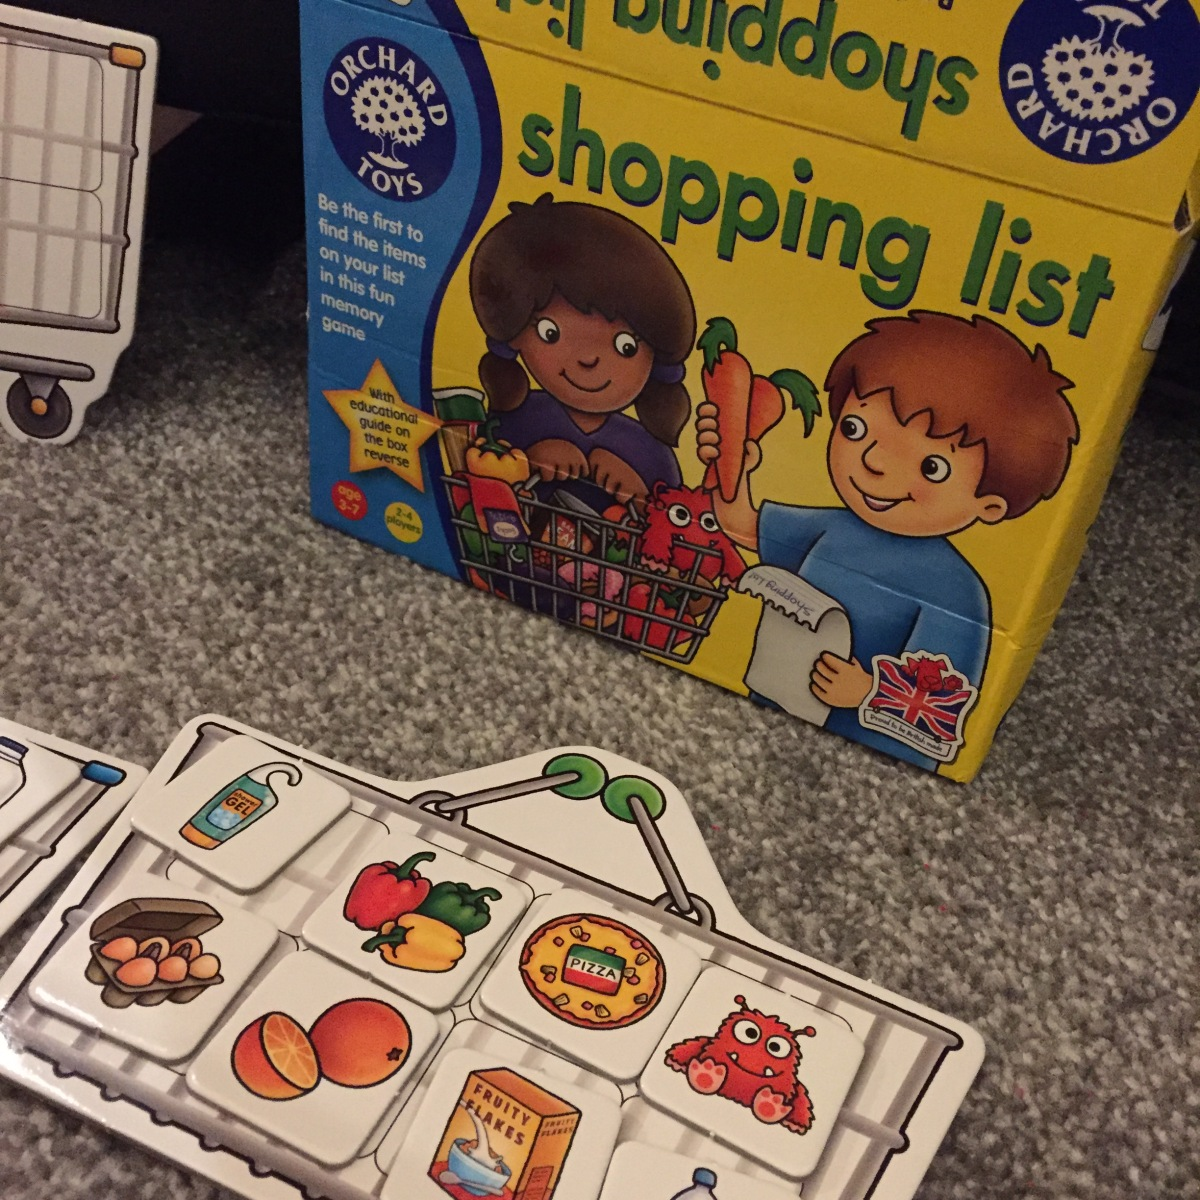 orchard toys shopping list instructions